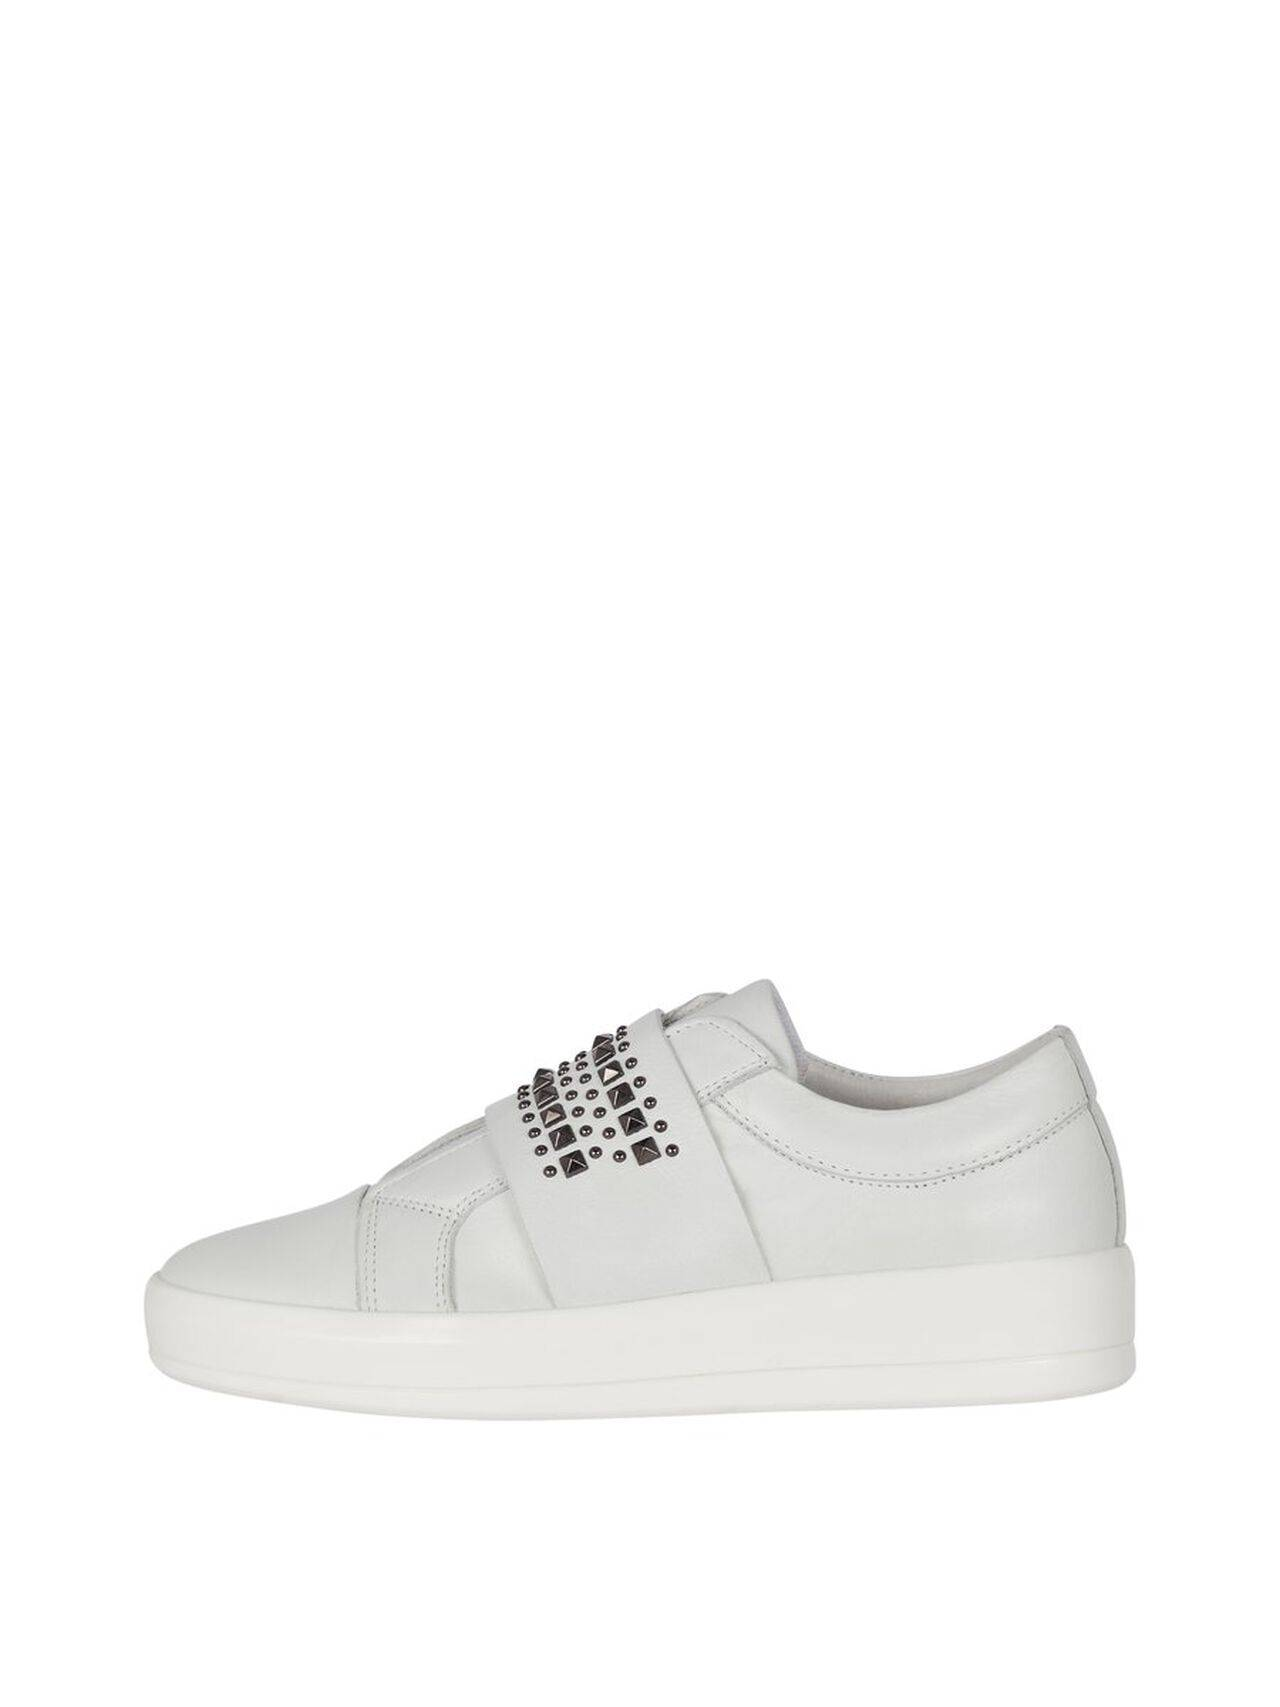 BIANCO Beatrice Leather Slip-on Sneakers Women White